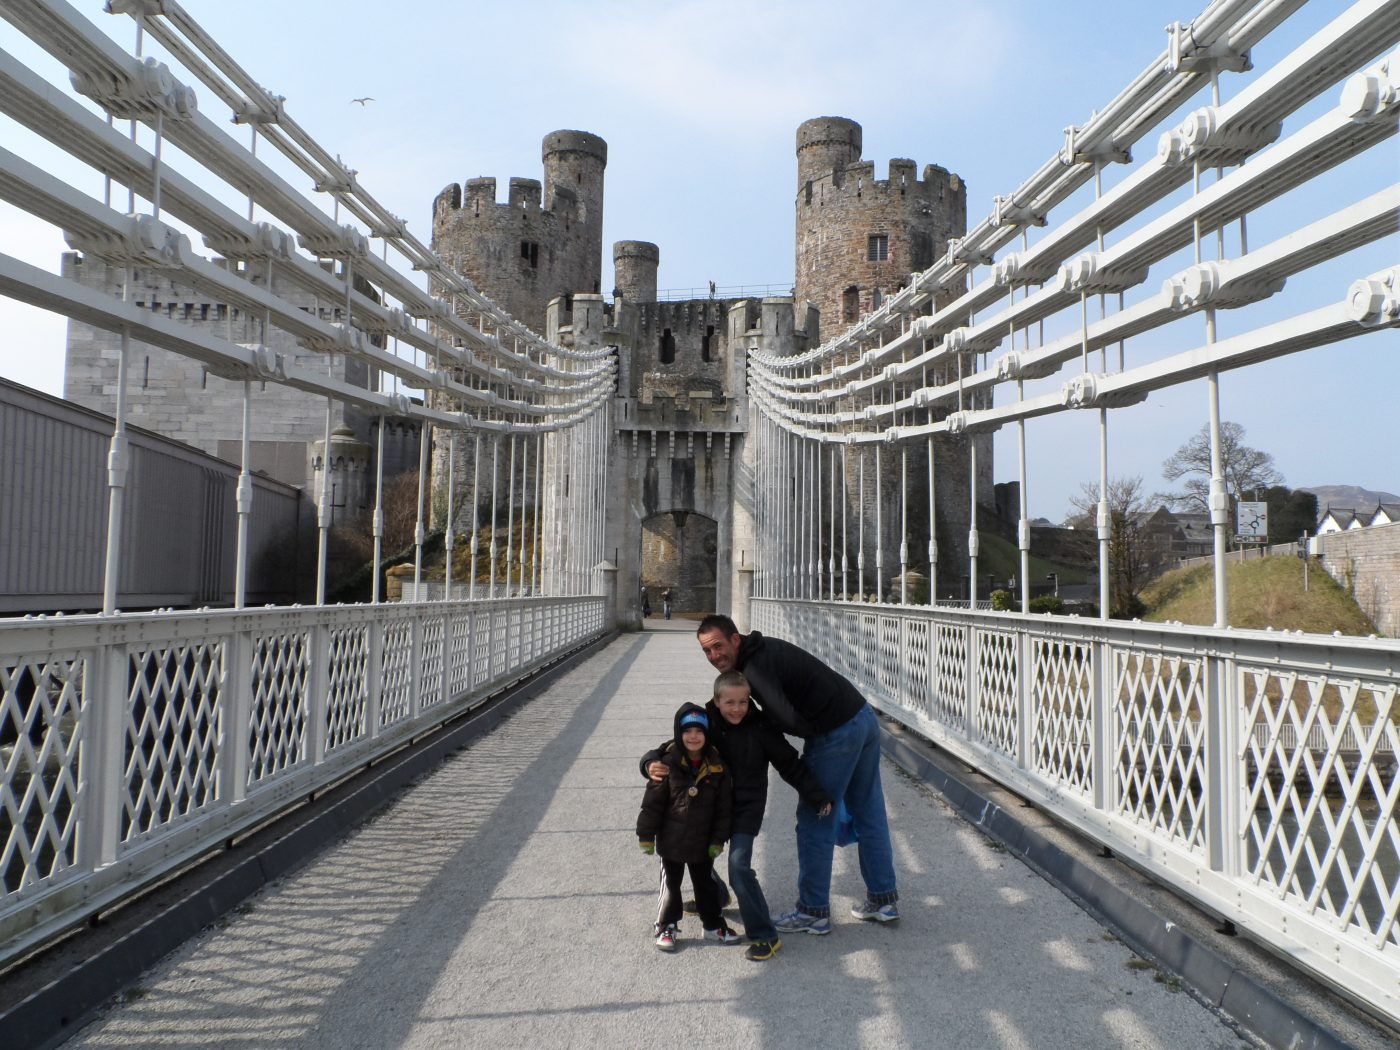 Conwy, Wales, Suspension Bridge - Conwy Castle